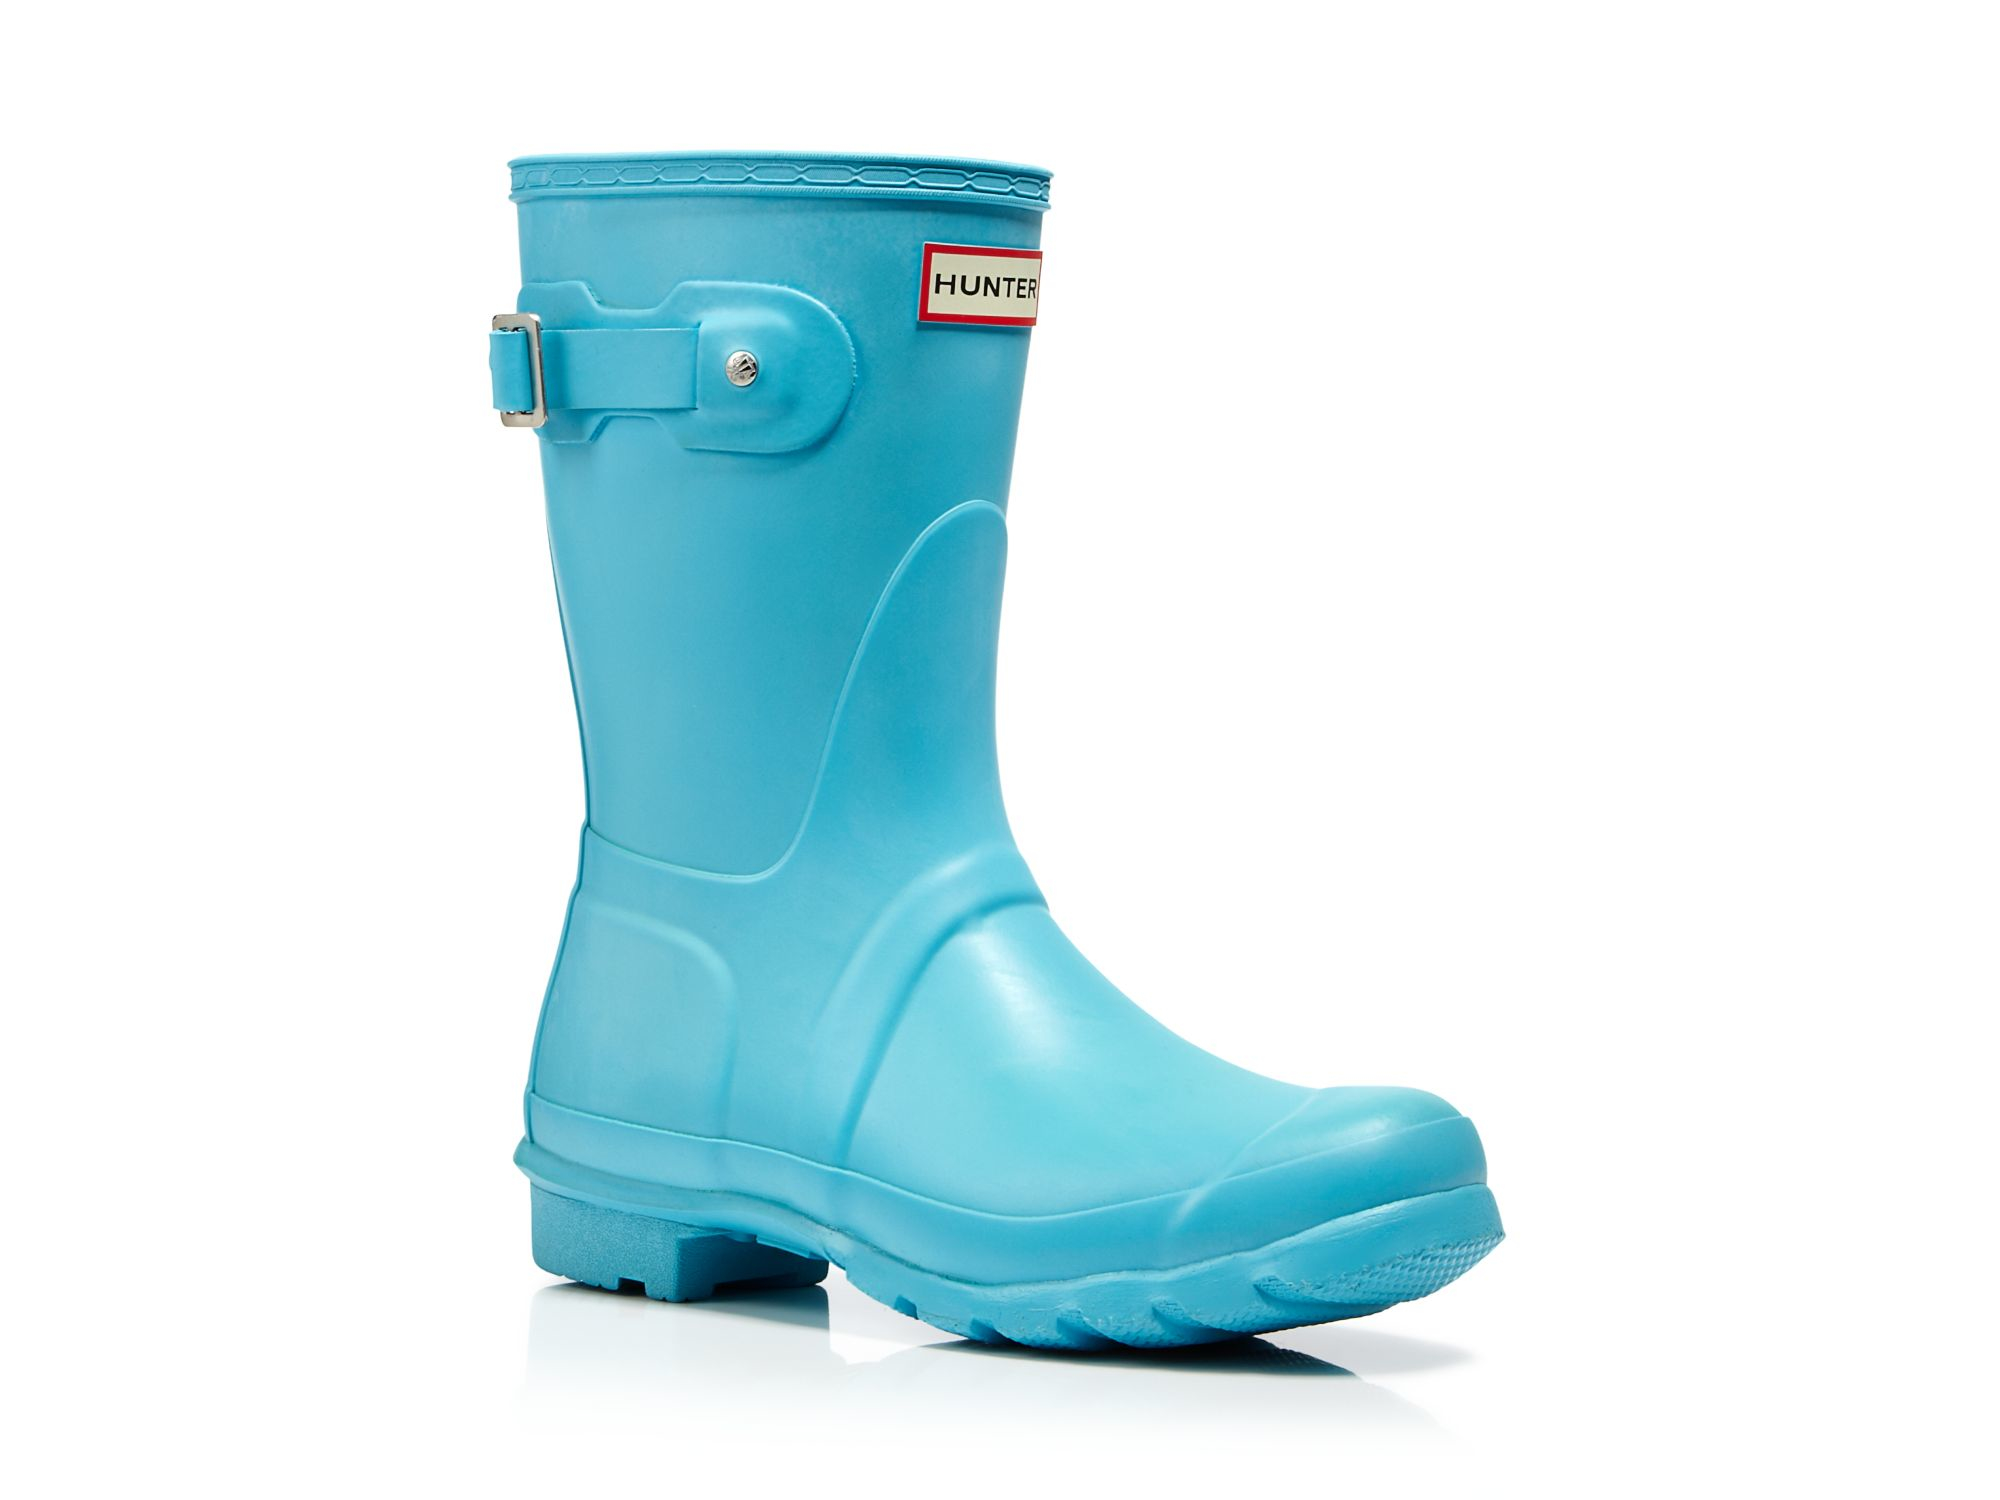 Hunter Rain Boots - Women's Original Short in Blue | Lyst